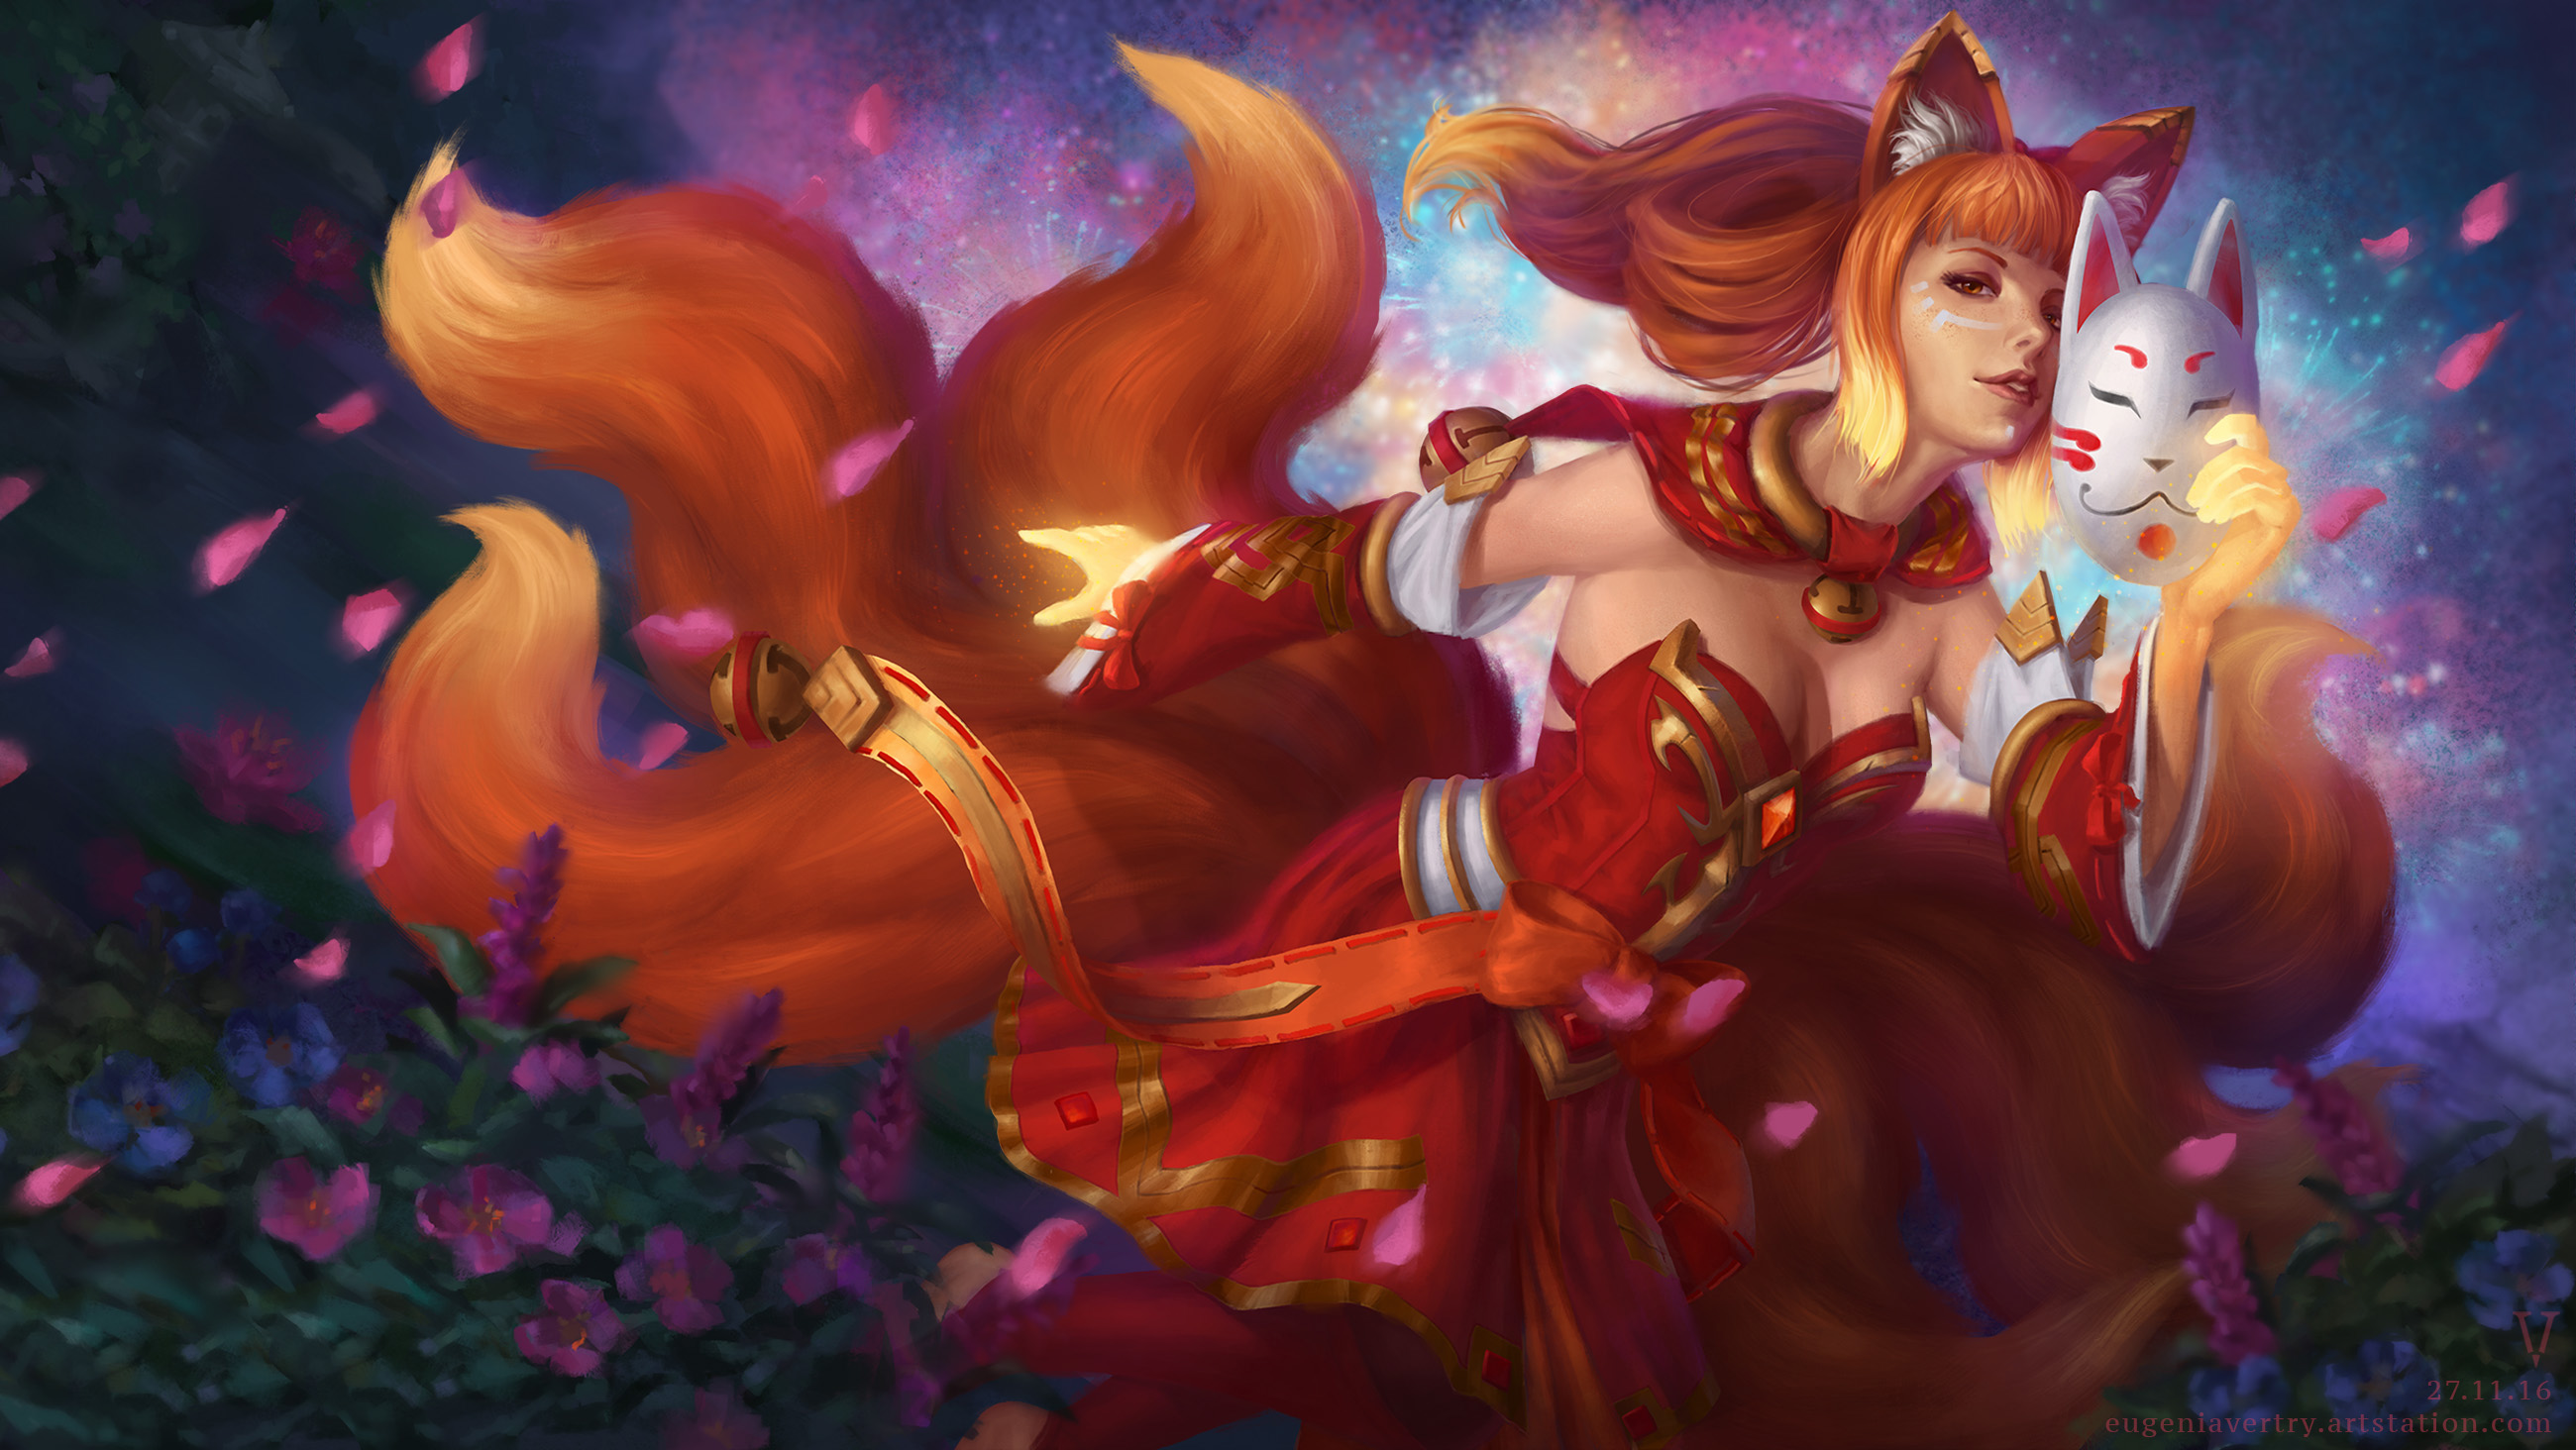 lina drawings on PaigeeWorld. Pictures of lina - PaigeeWorld